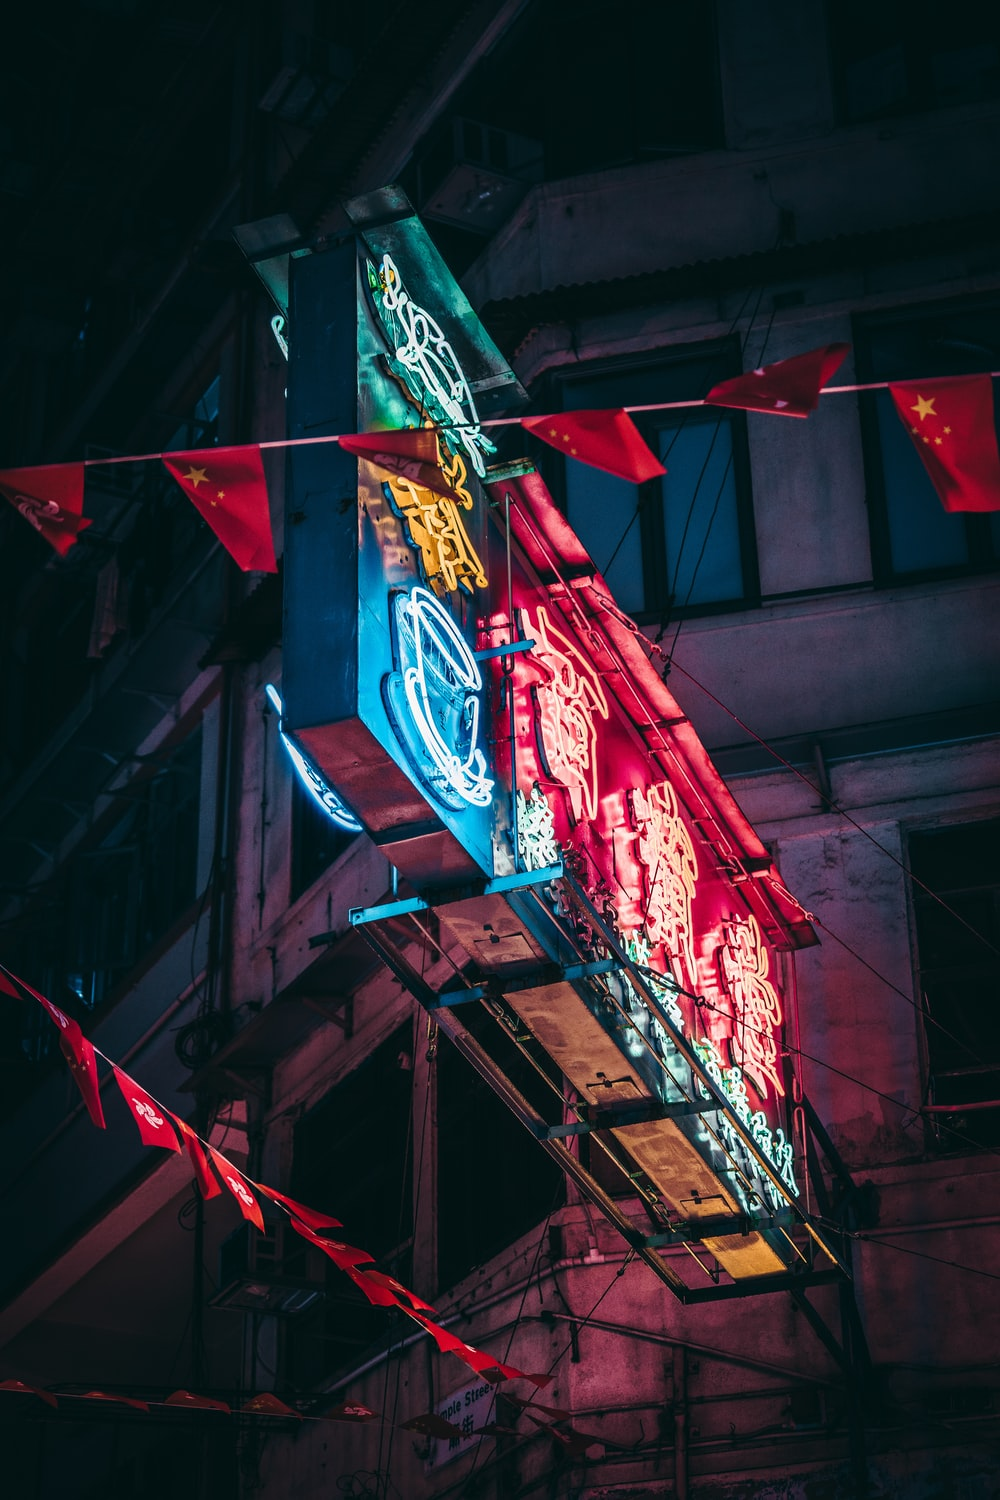 rectangular blue and red wooden stand during night time